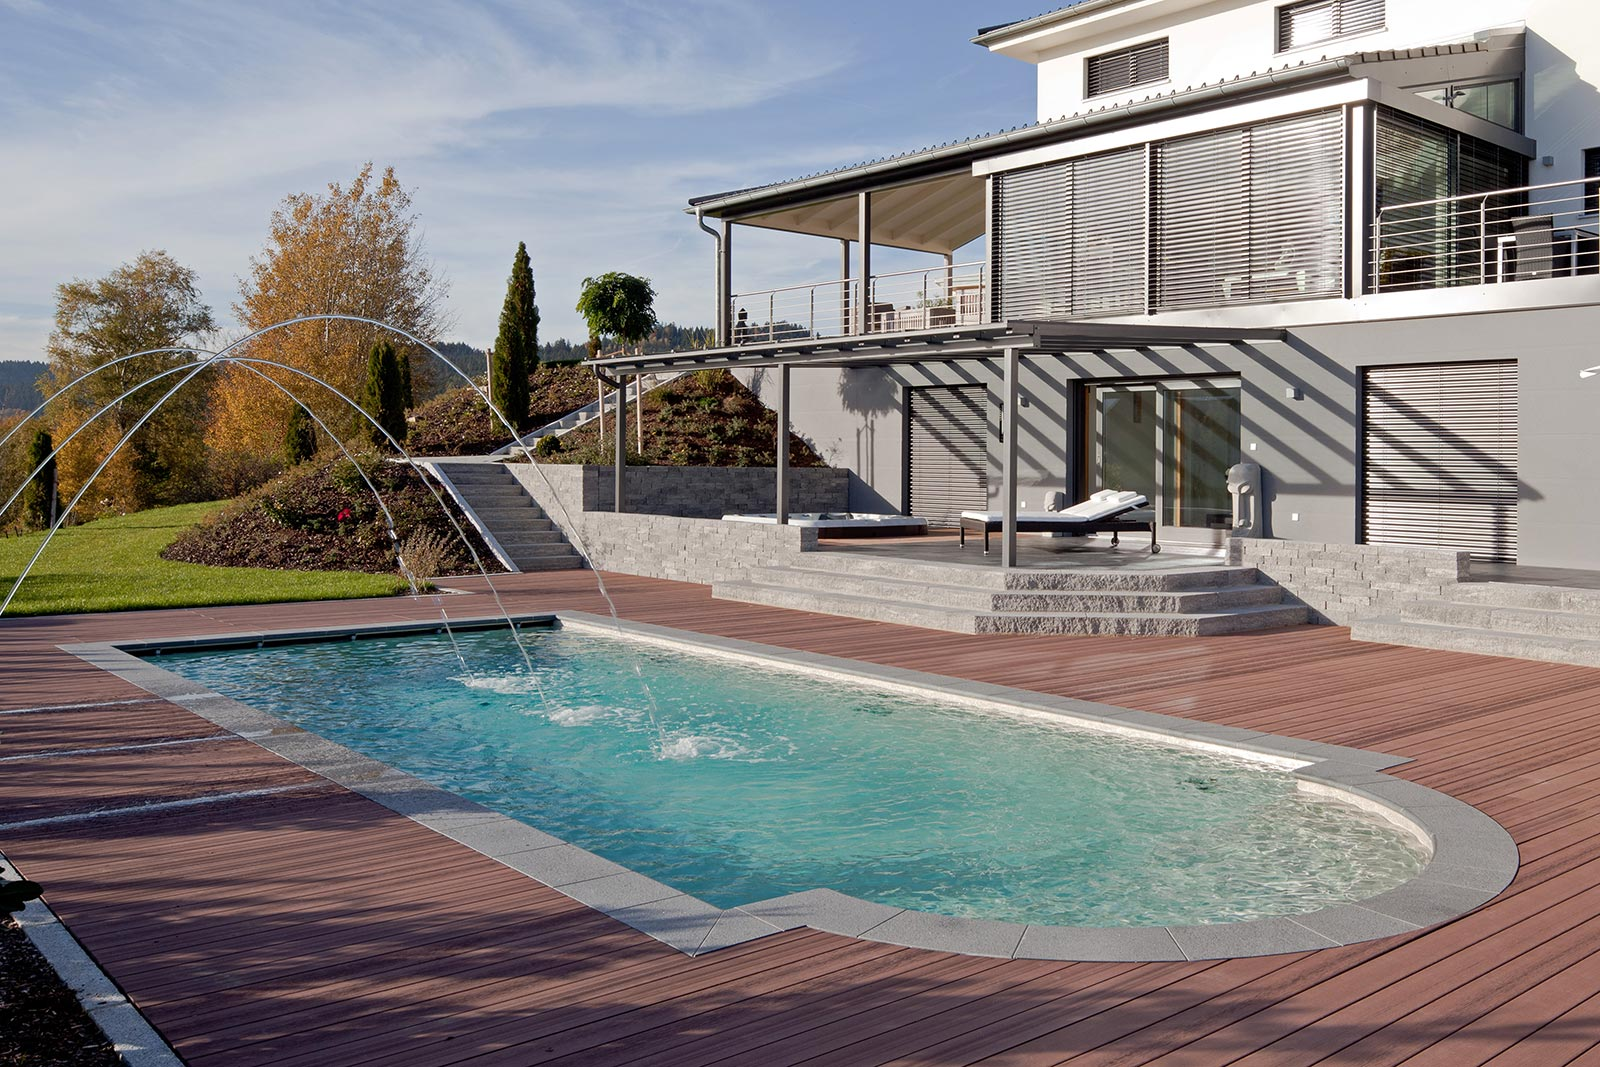 Portrait reps gmbh schwimmbad whirlpool poolservice for Fertigbecken pool